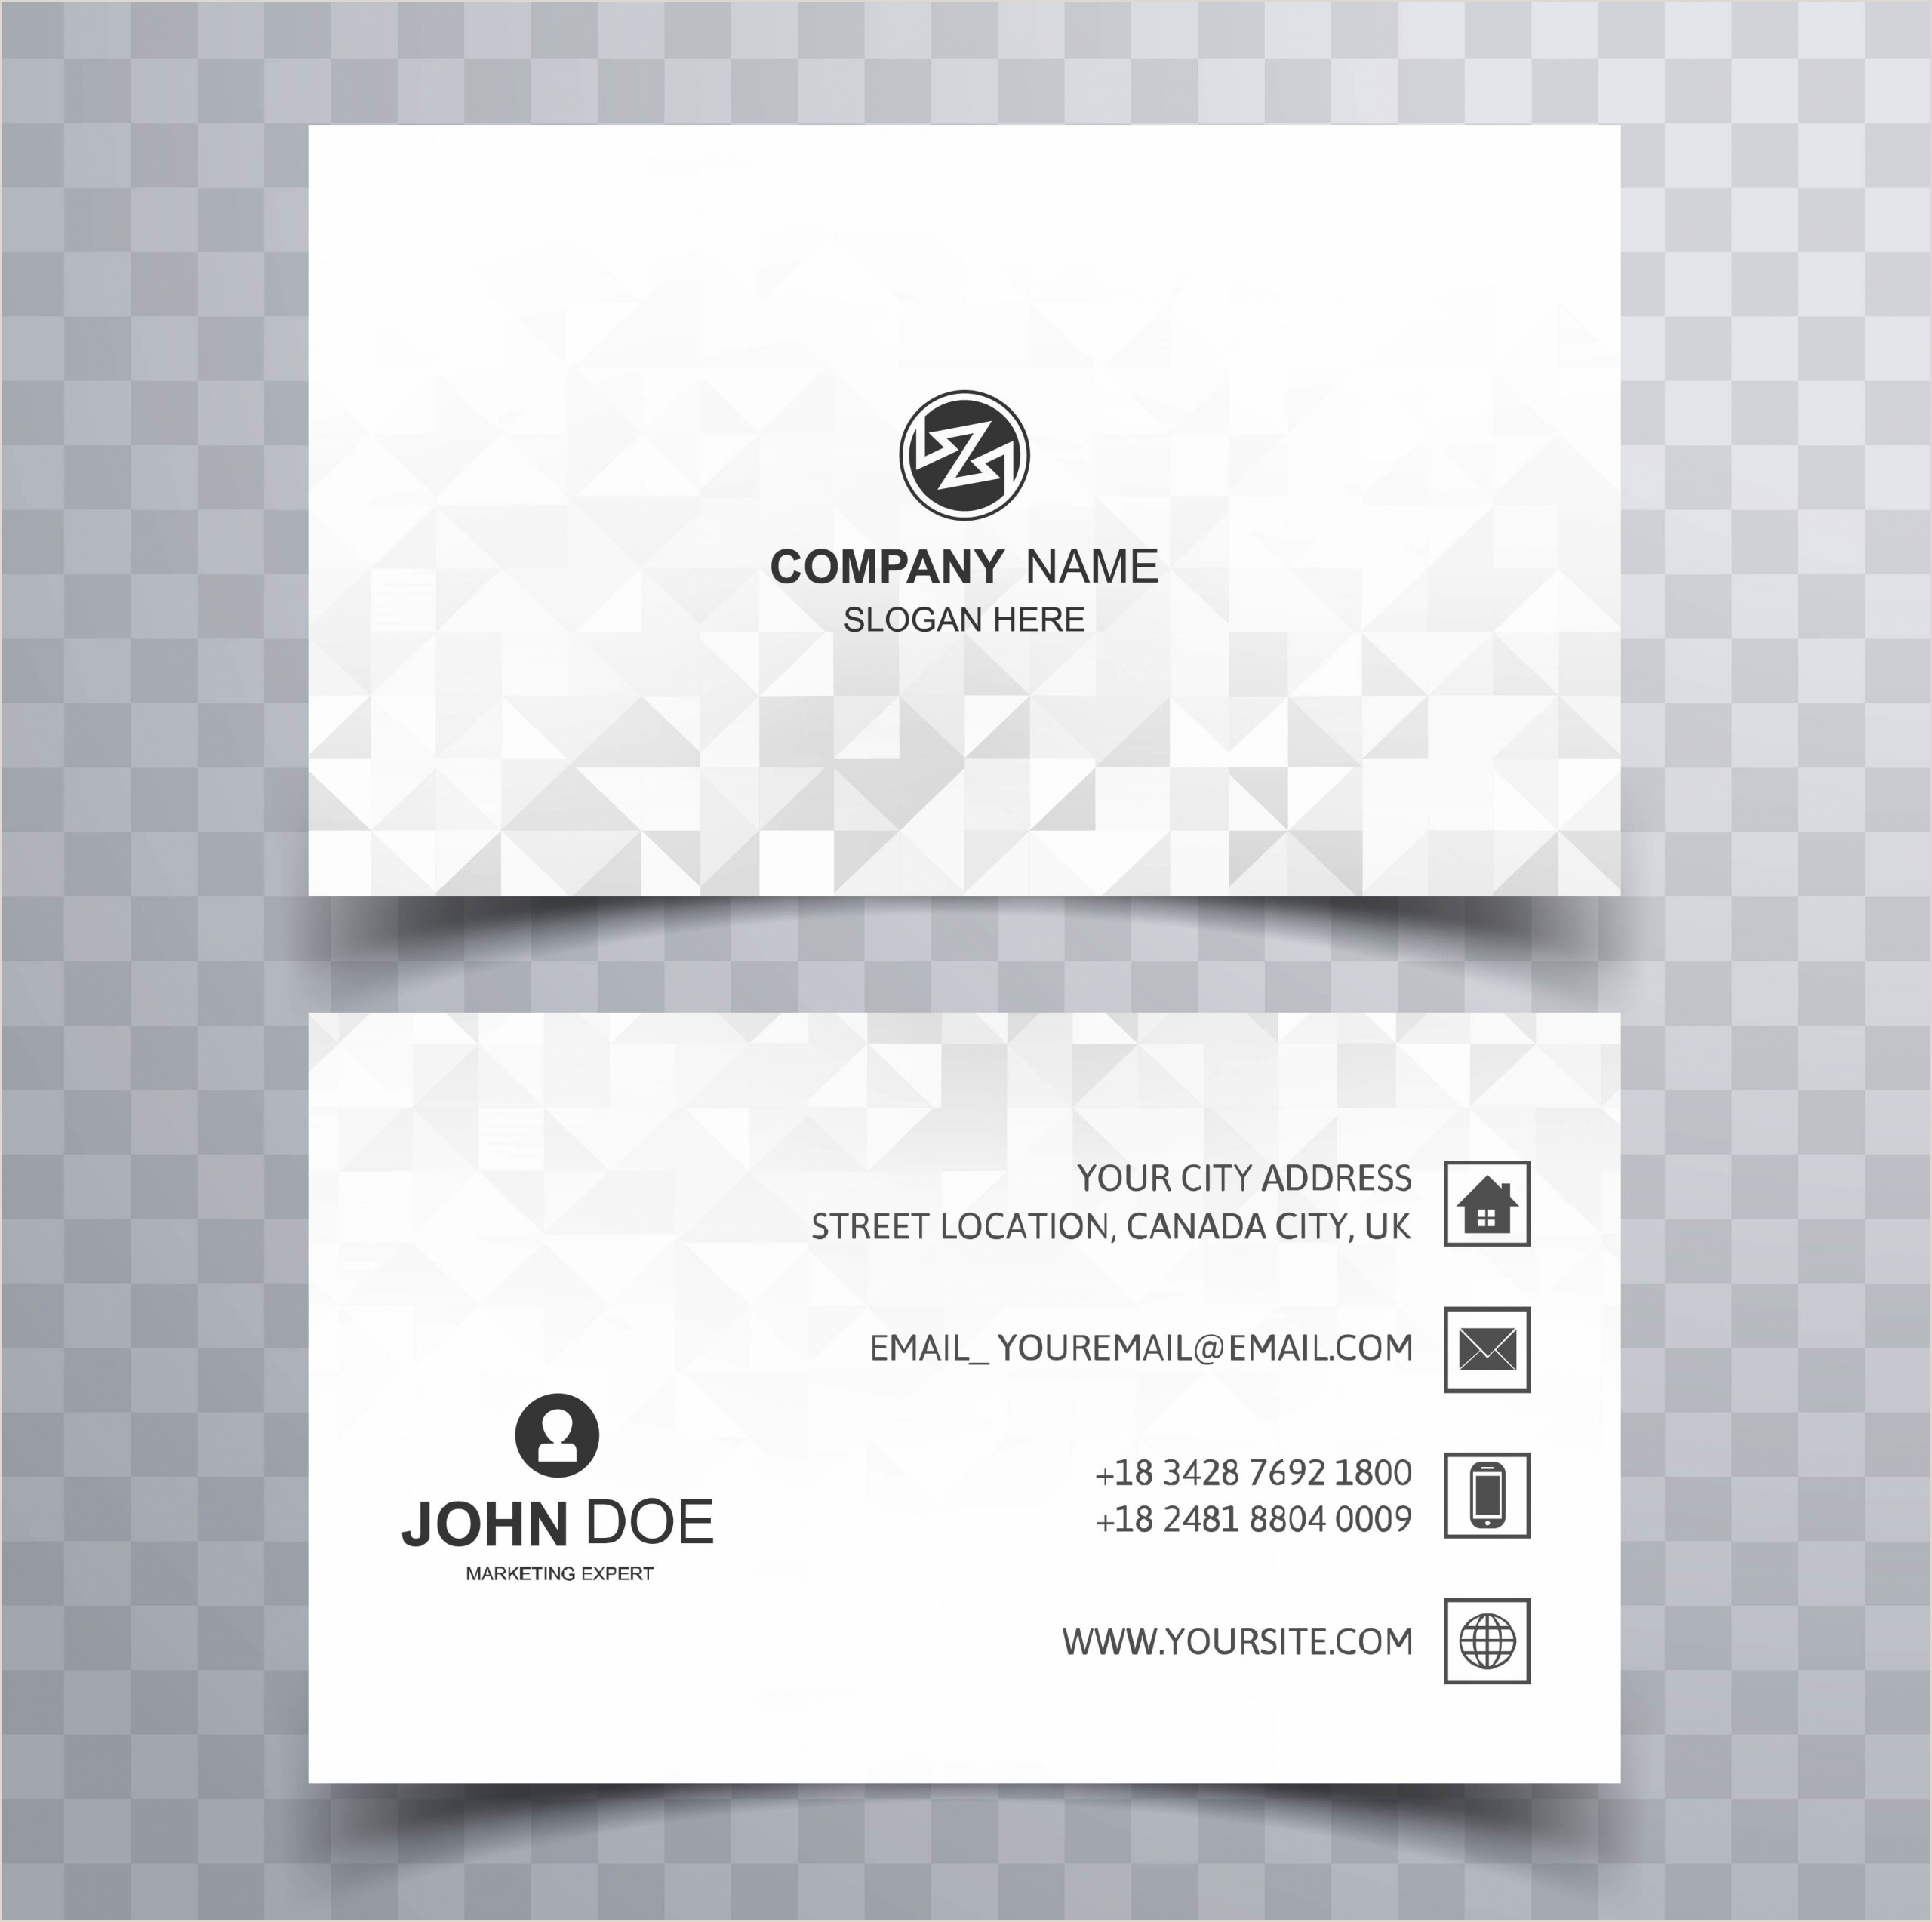 Calling Cards Template Calling Card Free Vector Art 54 282 Free Downloads